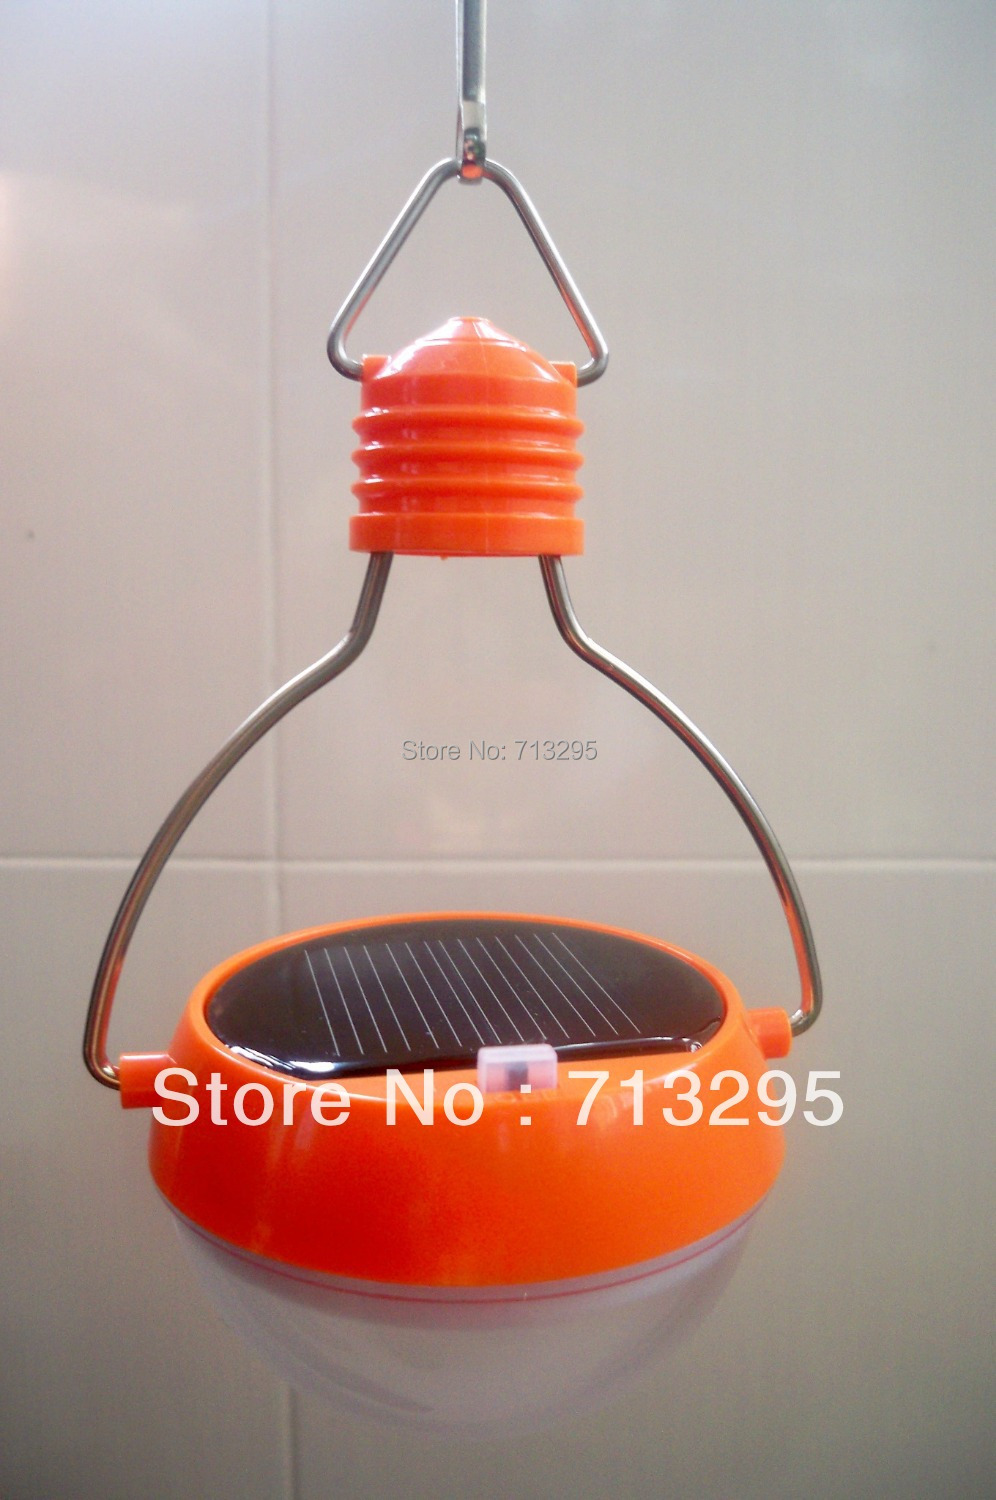 Novelty Solar LED Lamp Portable 100% Waterproof Outdoor solar light bulbs solar camping lantern ...